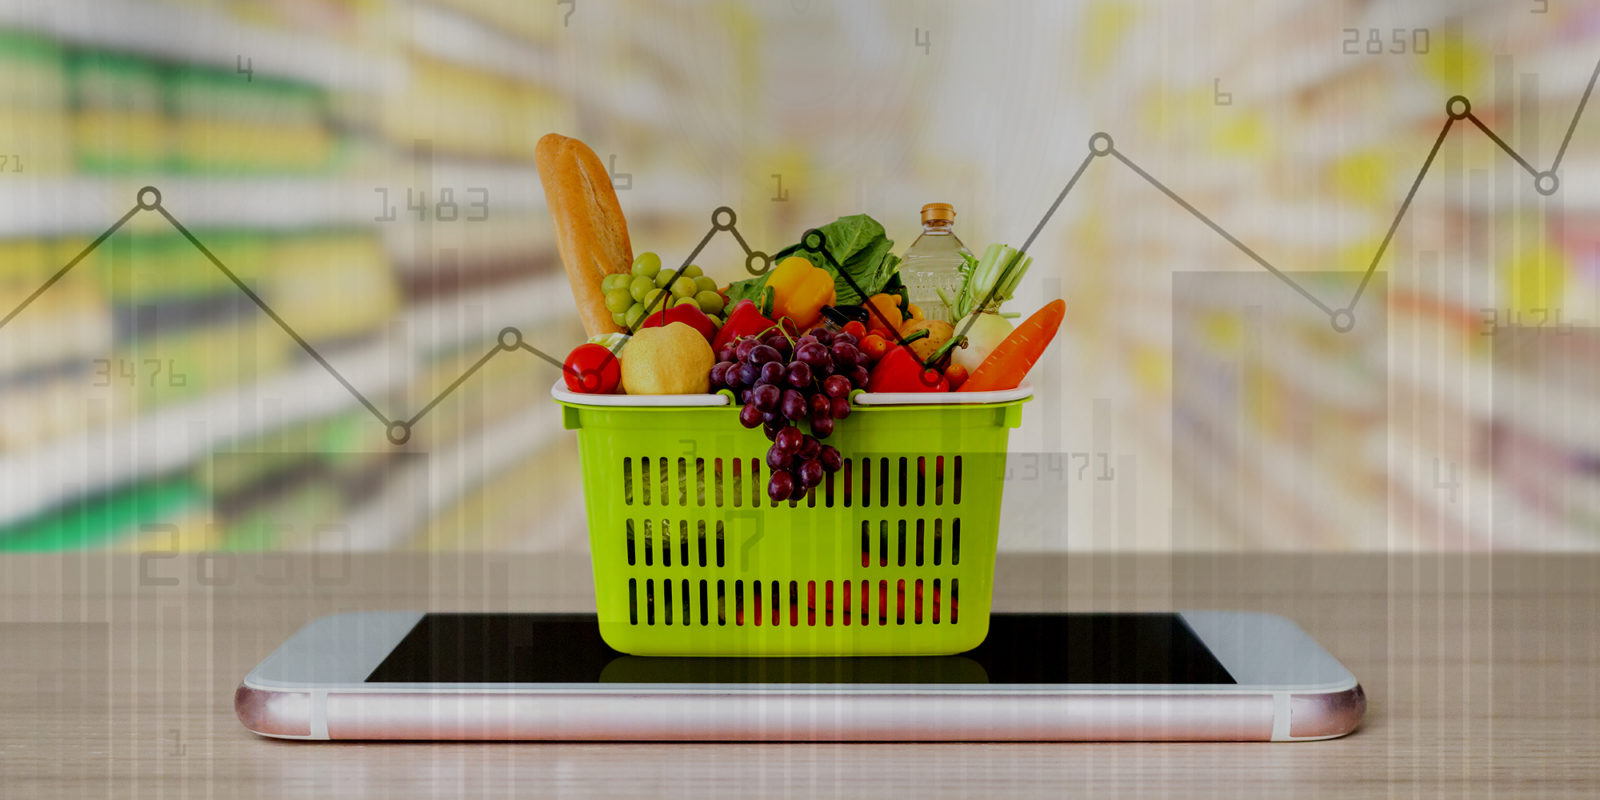 Food inflation fuelling rising inflation figures